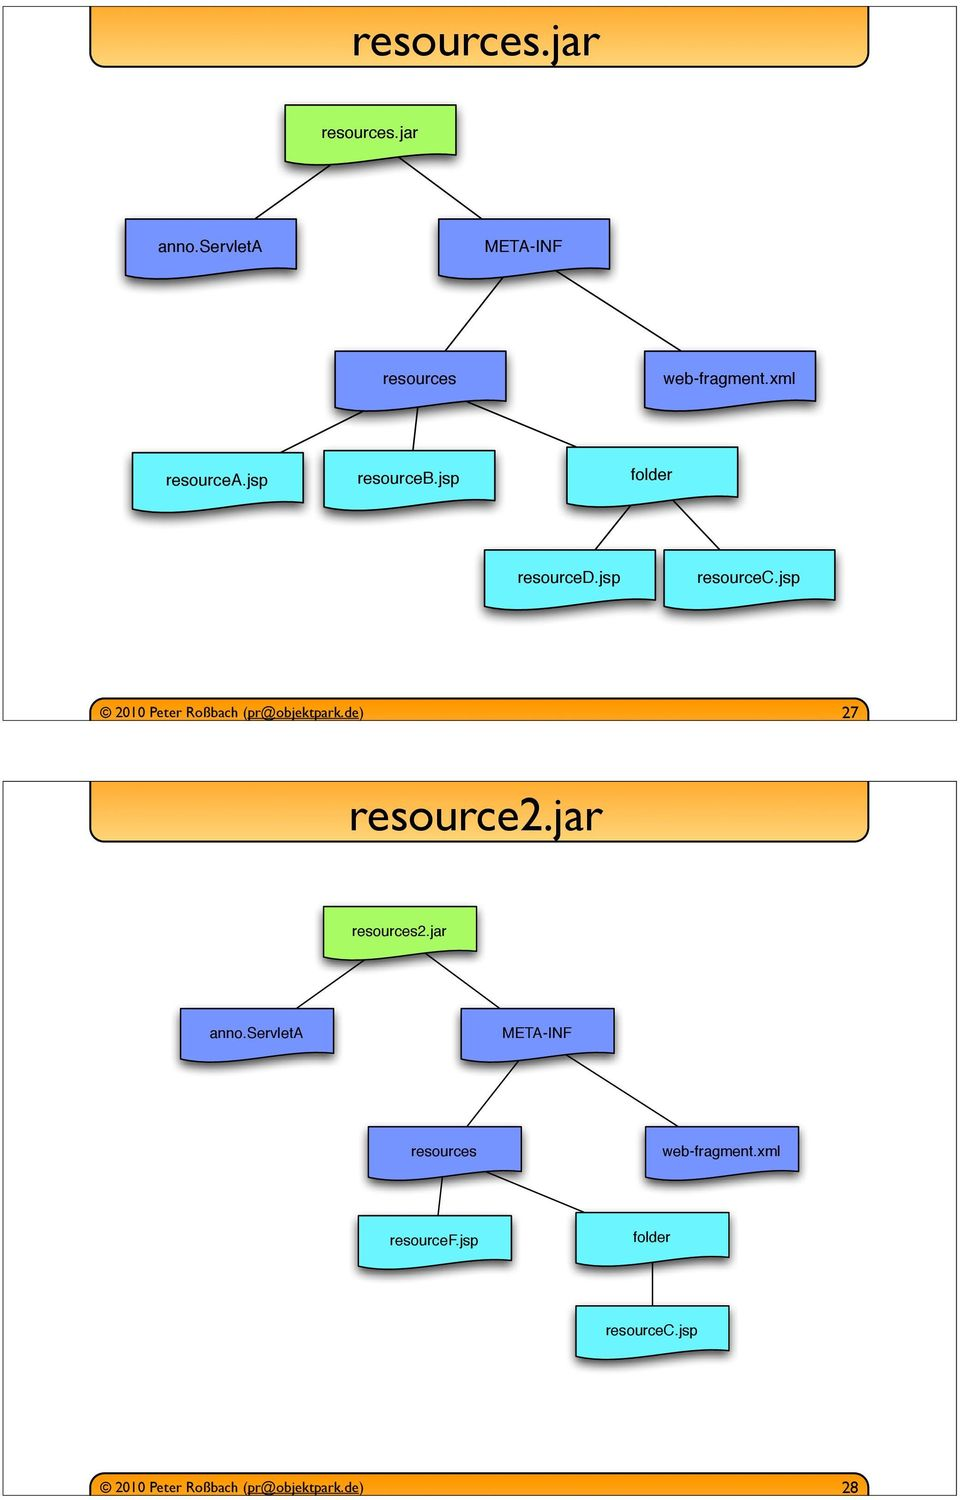 jsp resourceb.jsp folder resourced.jsp resourcec.